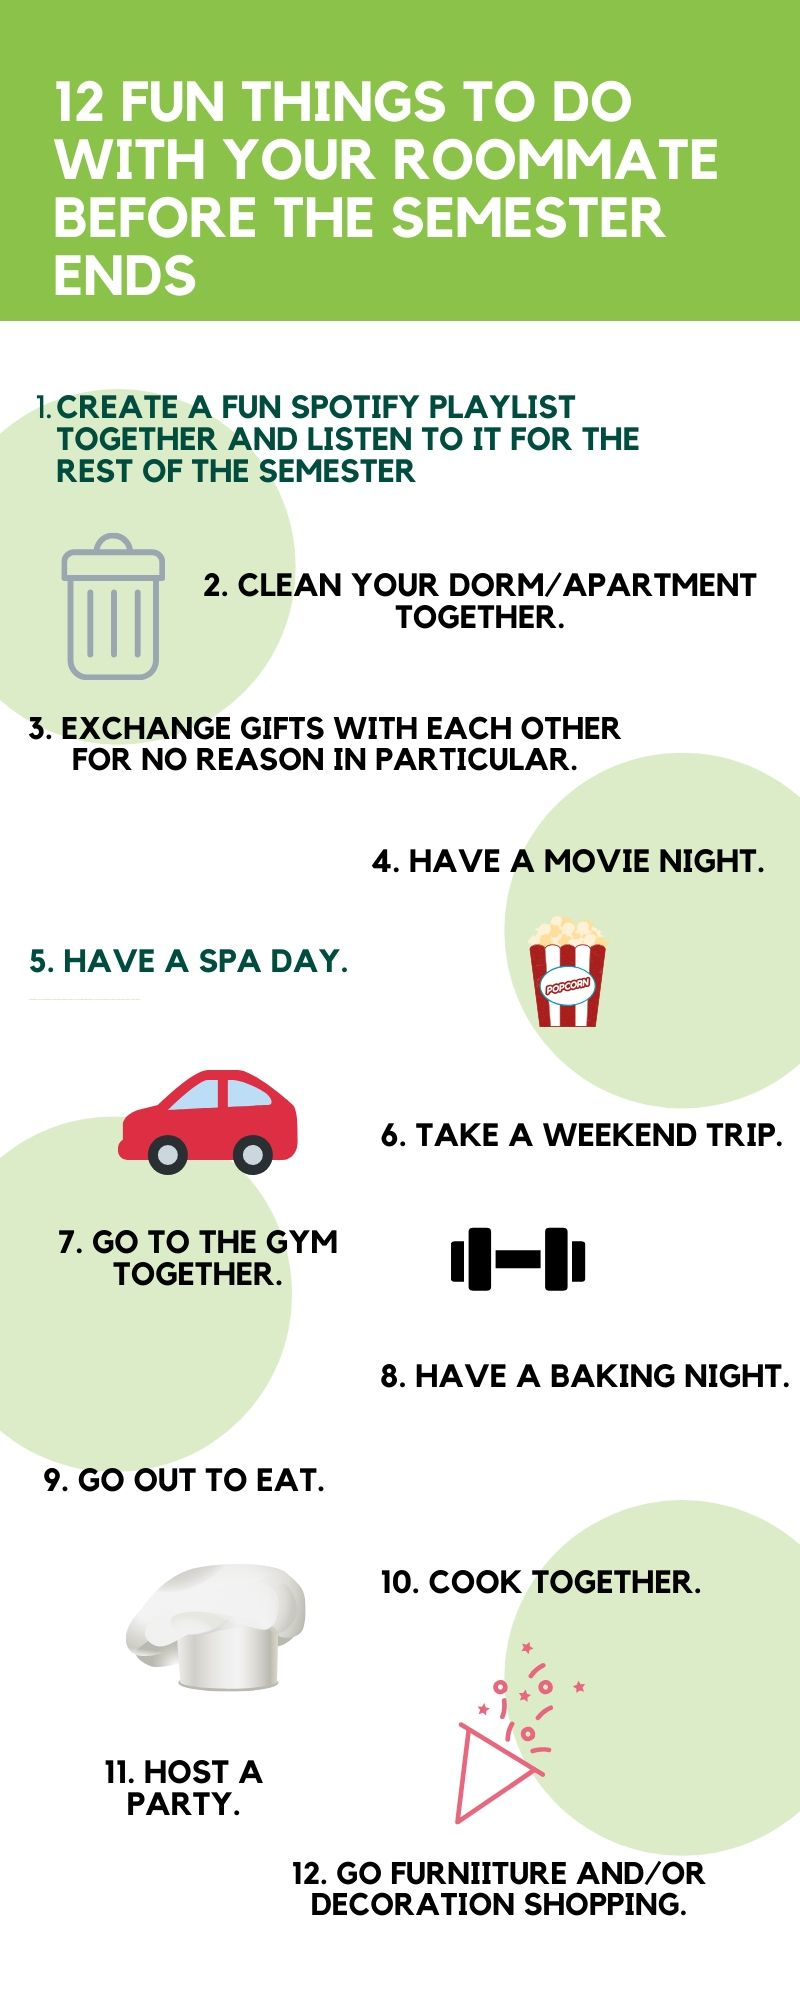 Roommate Finder: 12 Fun Things to Do With Your Roommate Before the End of the Semester